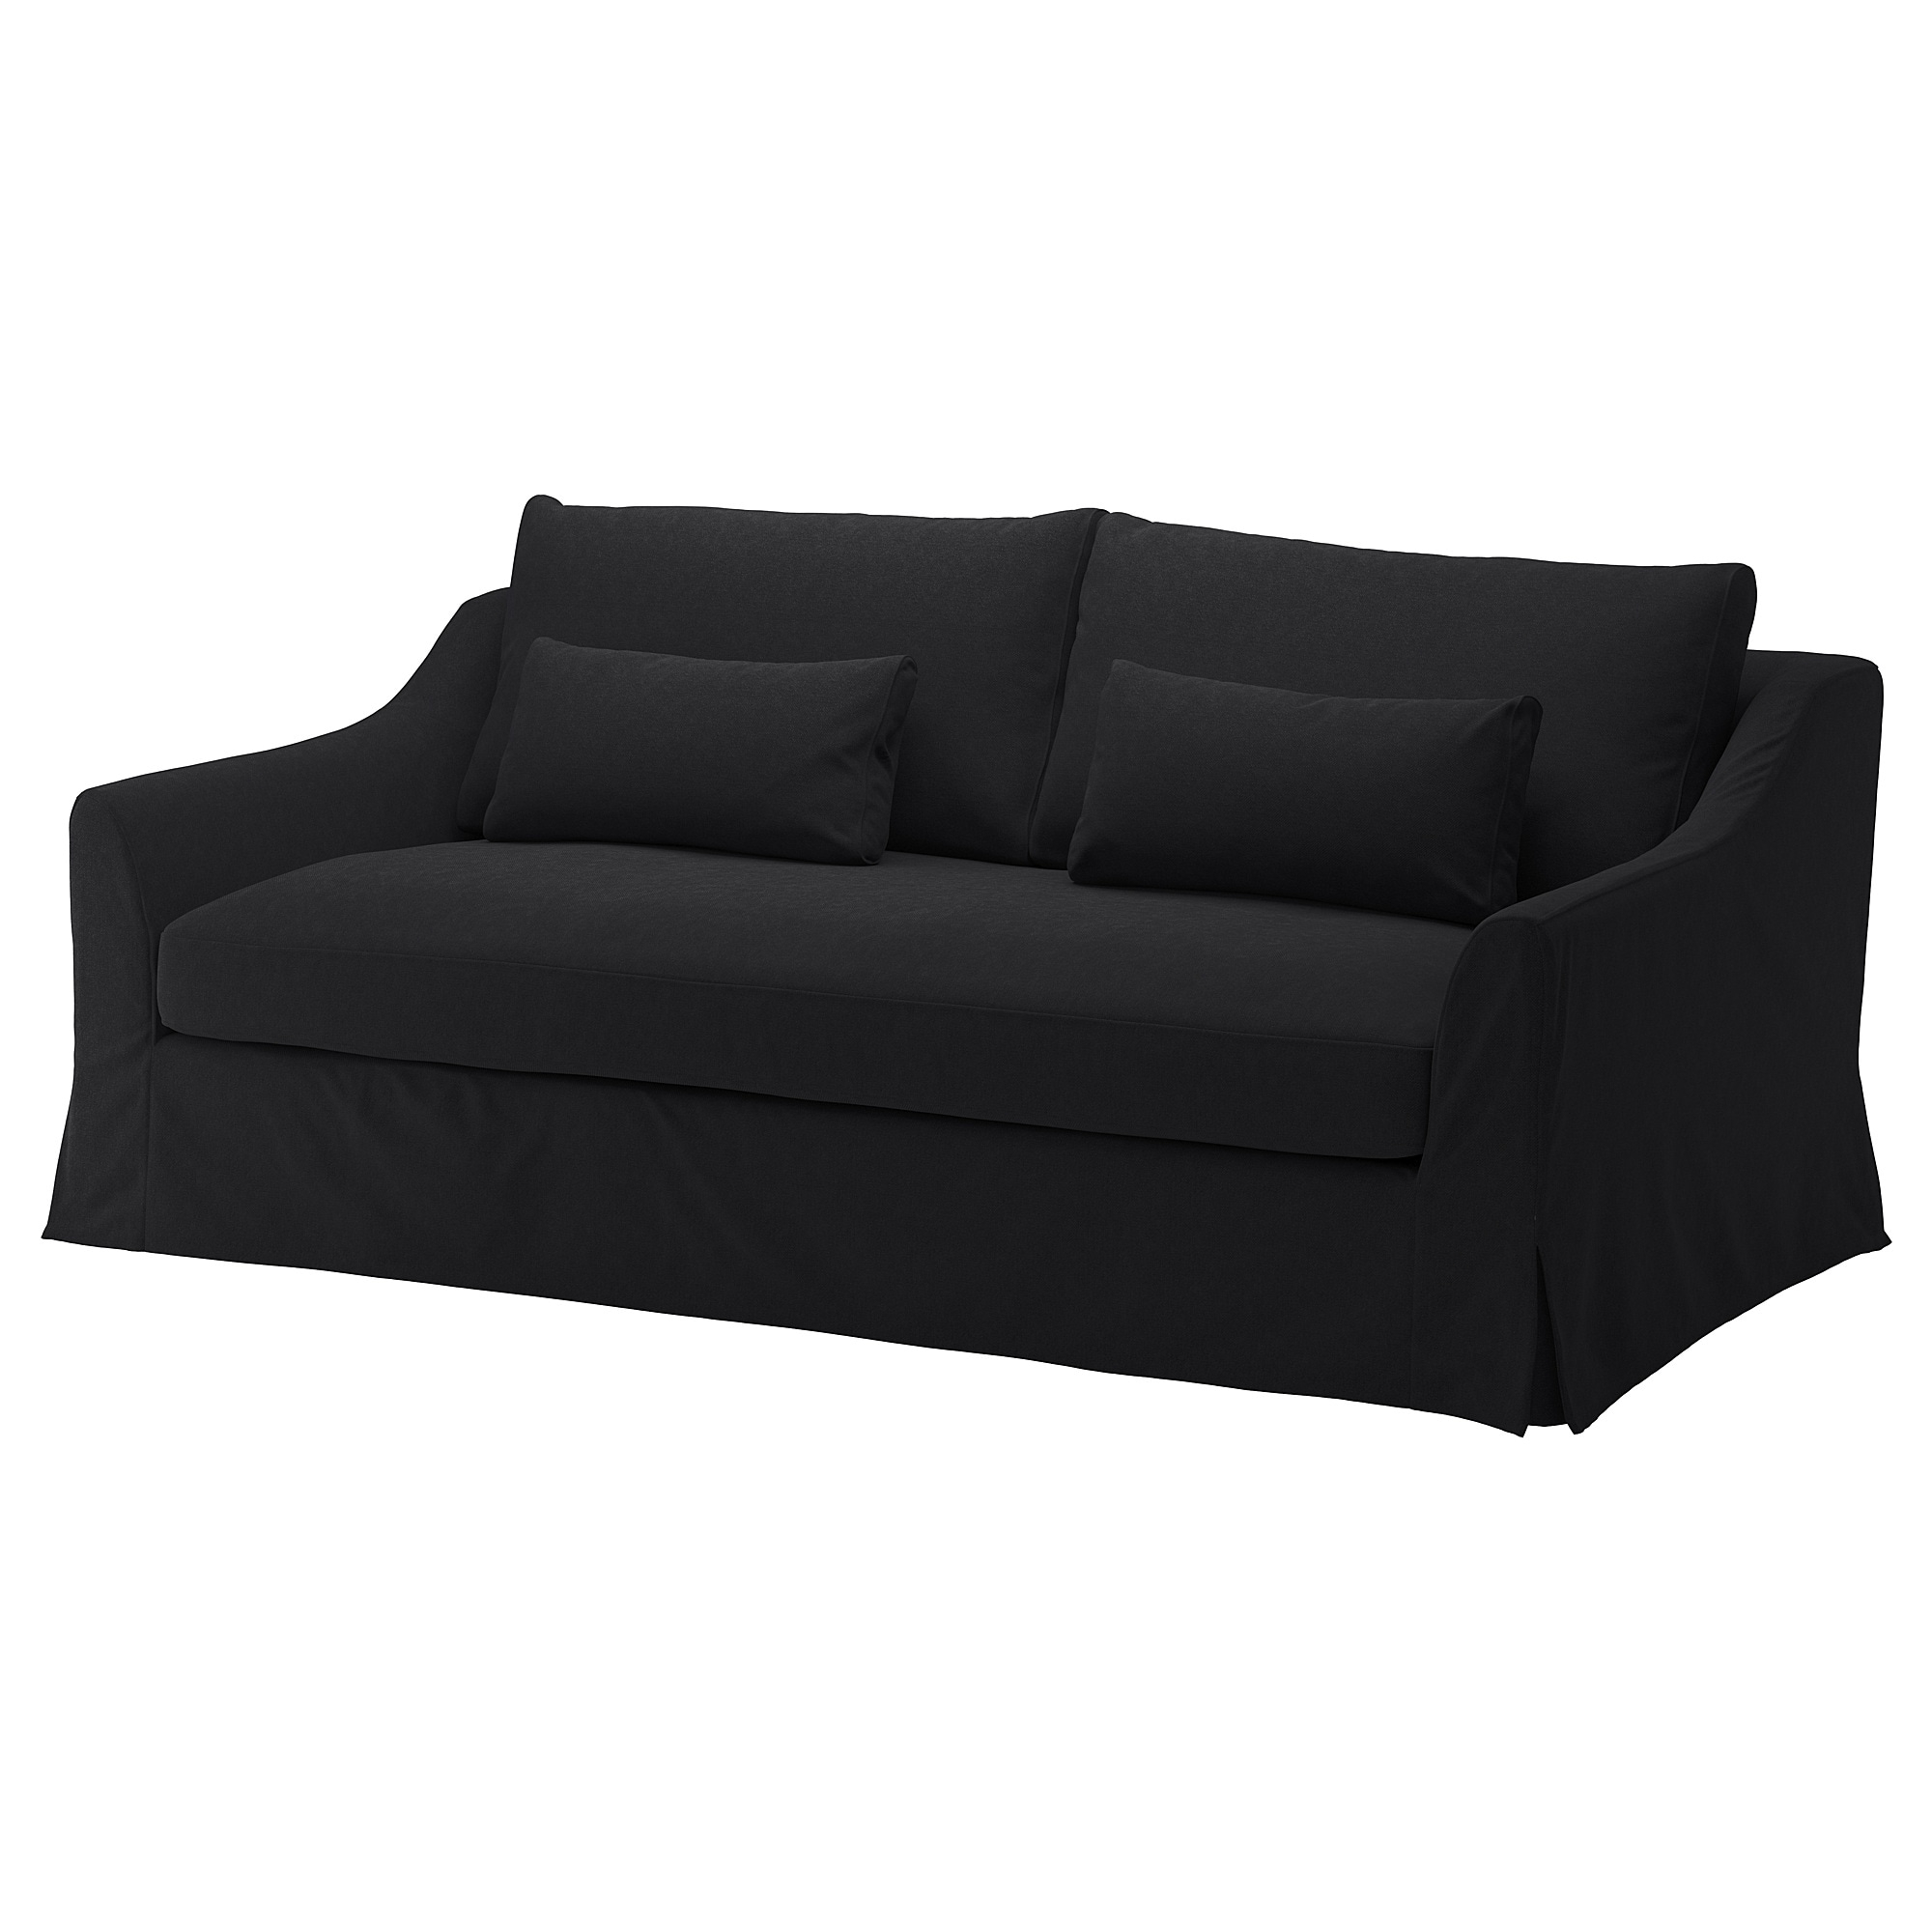 Sofas – Settees, Couches & More | Ikea Within London Dark Grey Sofa Chairs (Image 18 of 25)